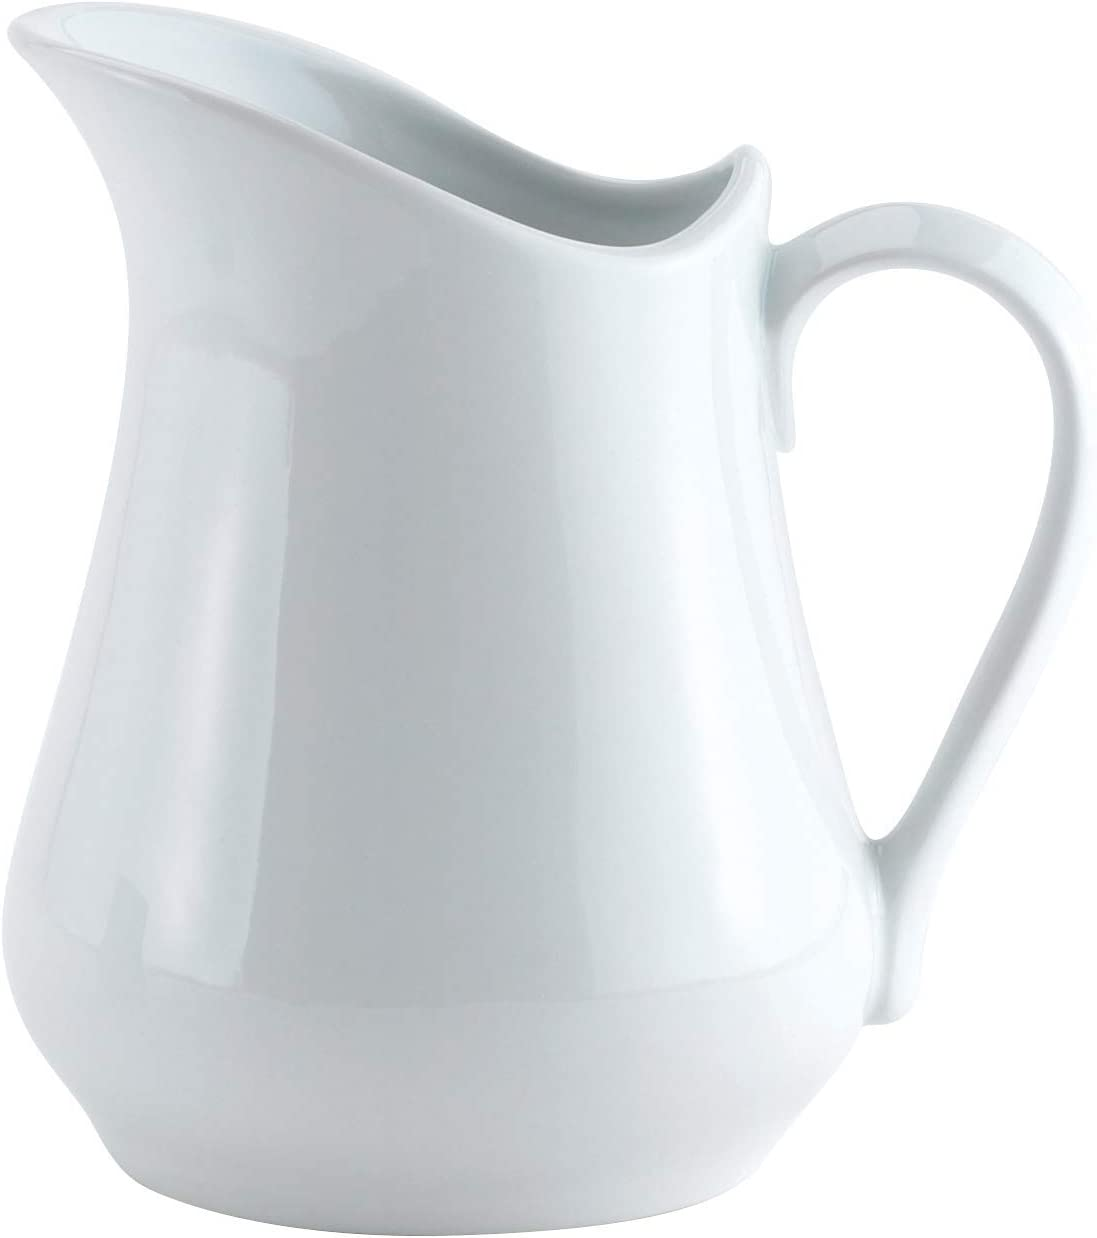 TEOCH Creamer Pitcher with Handle, Fine White Porcelain, 16-Ounces